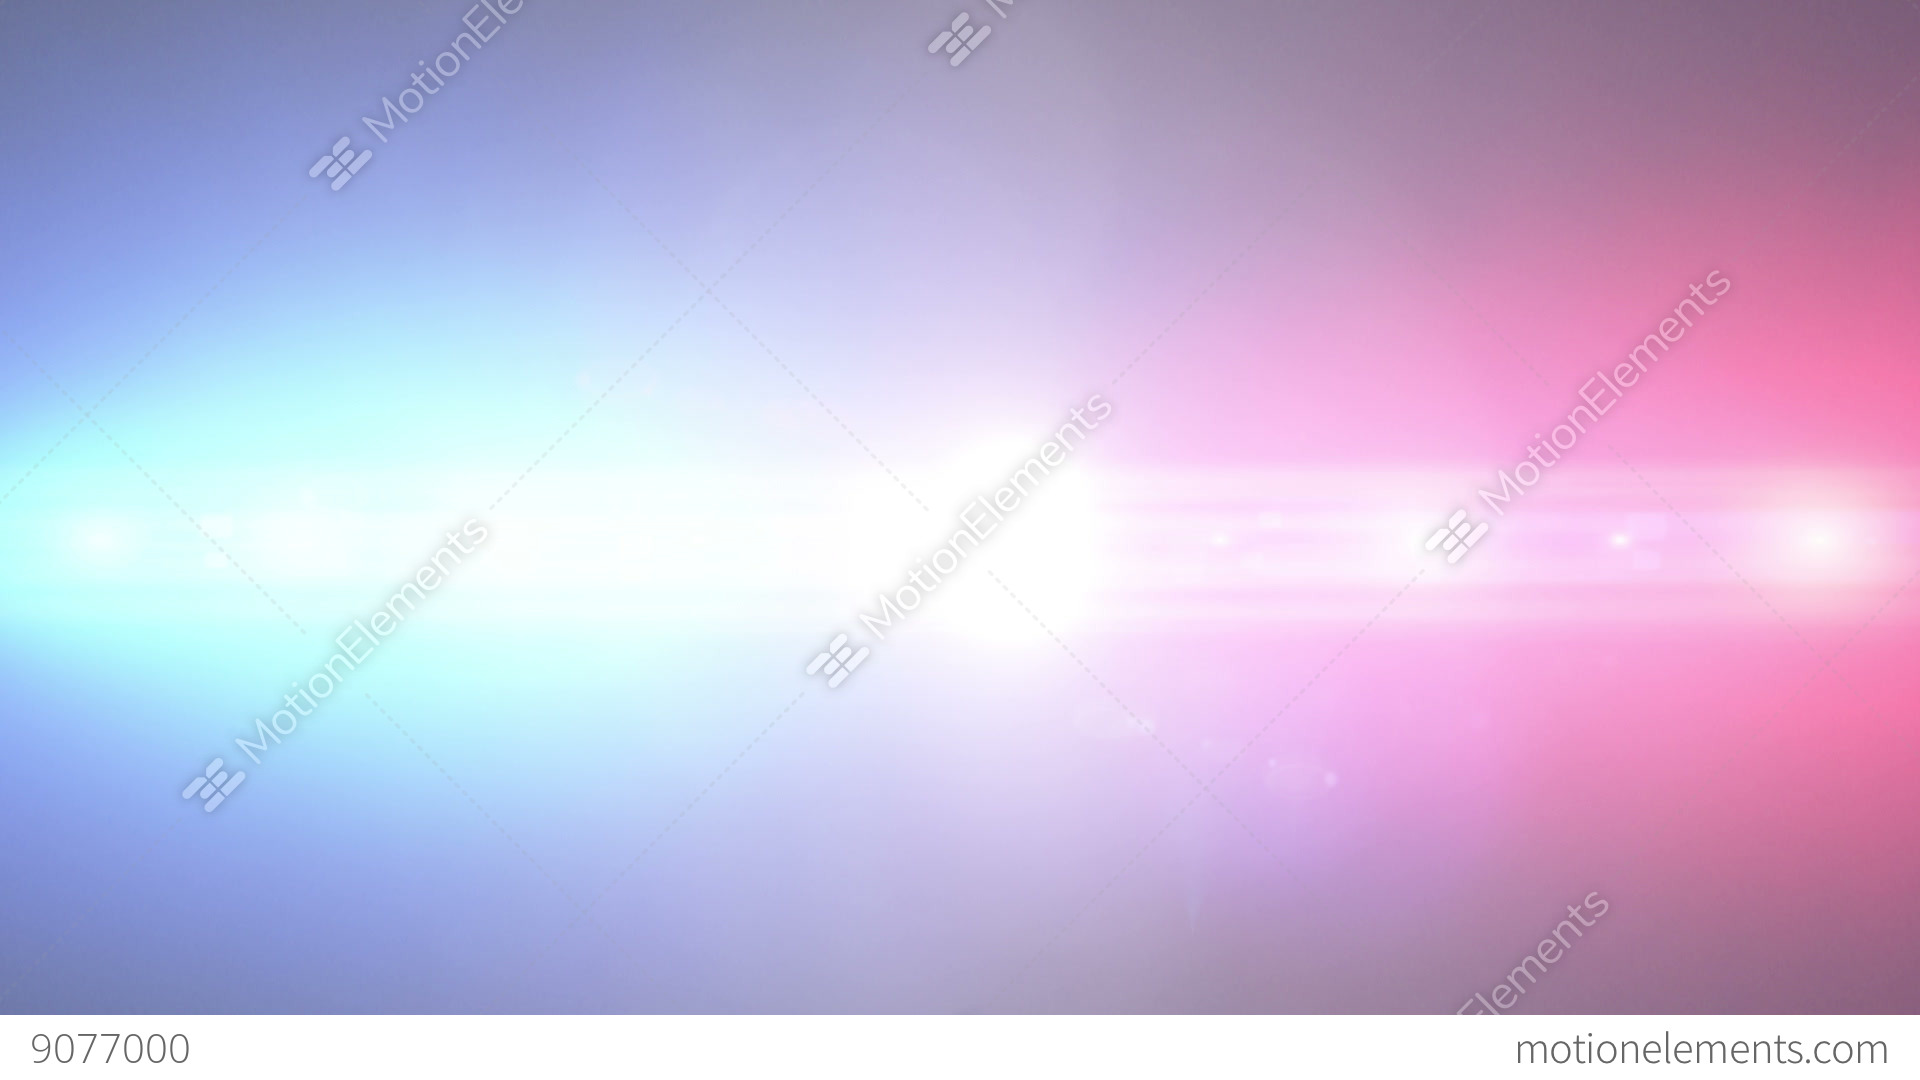 Police Lights Background, Loop Stock Animation  9077000